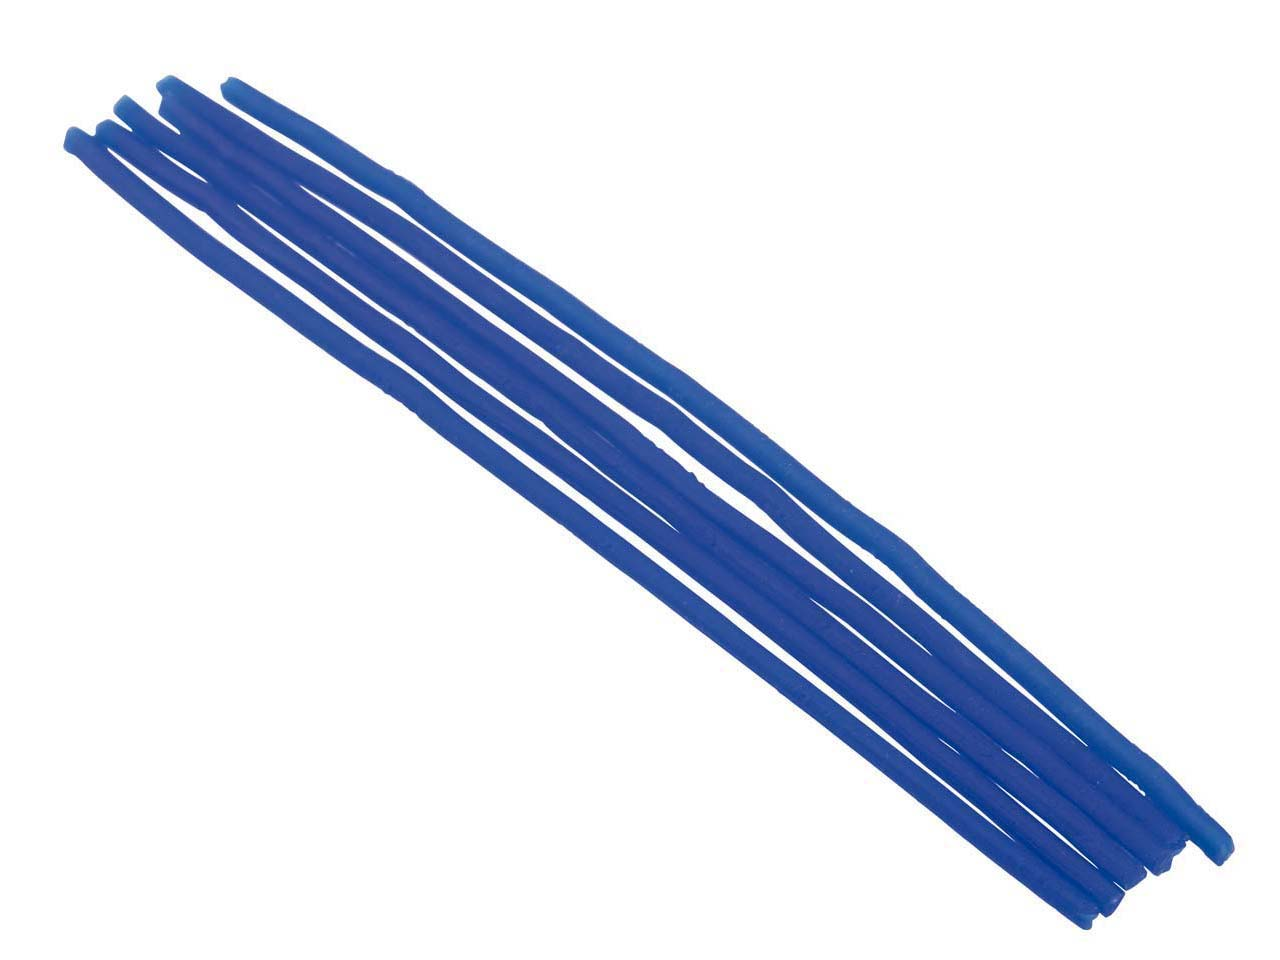 Ferris Cowdery Wax Profile Wire    Round Tube Blue 2.5mm Pack of 6